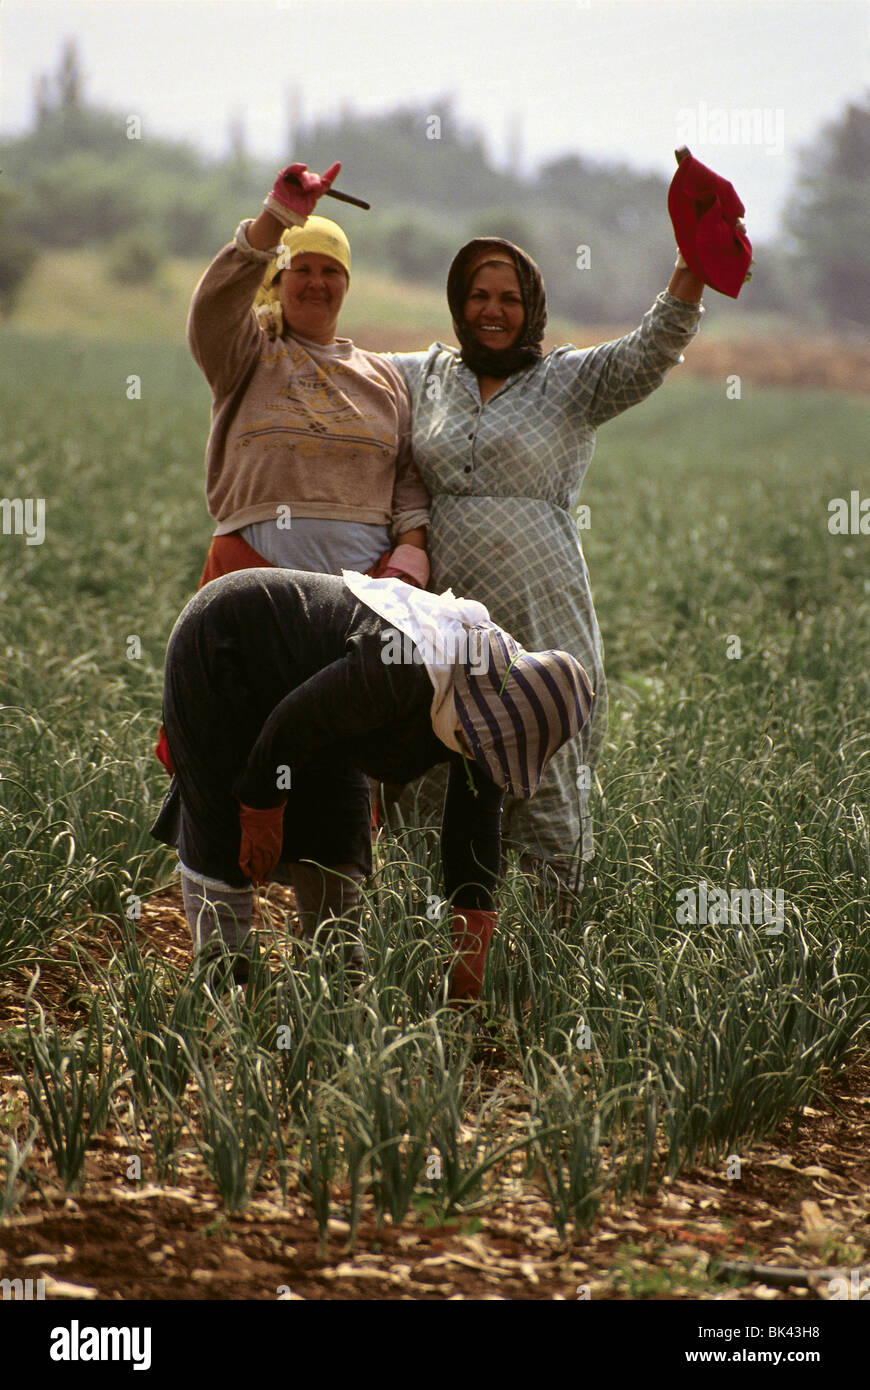 Workers in an onion field, Israel Stock Photo